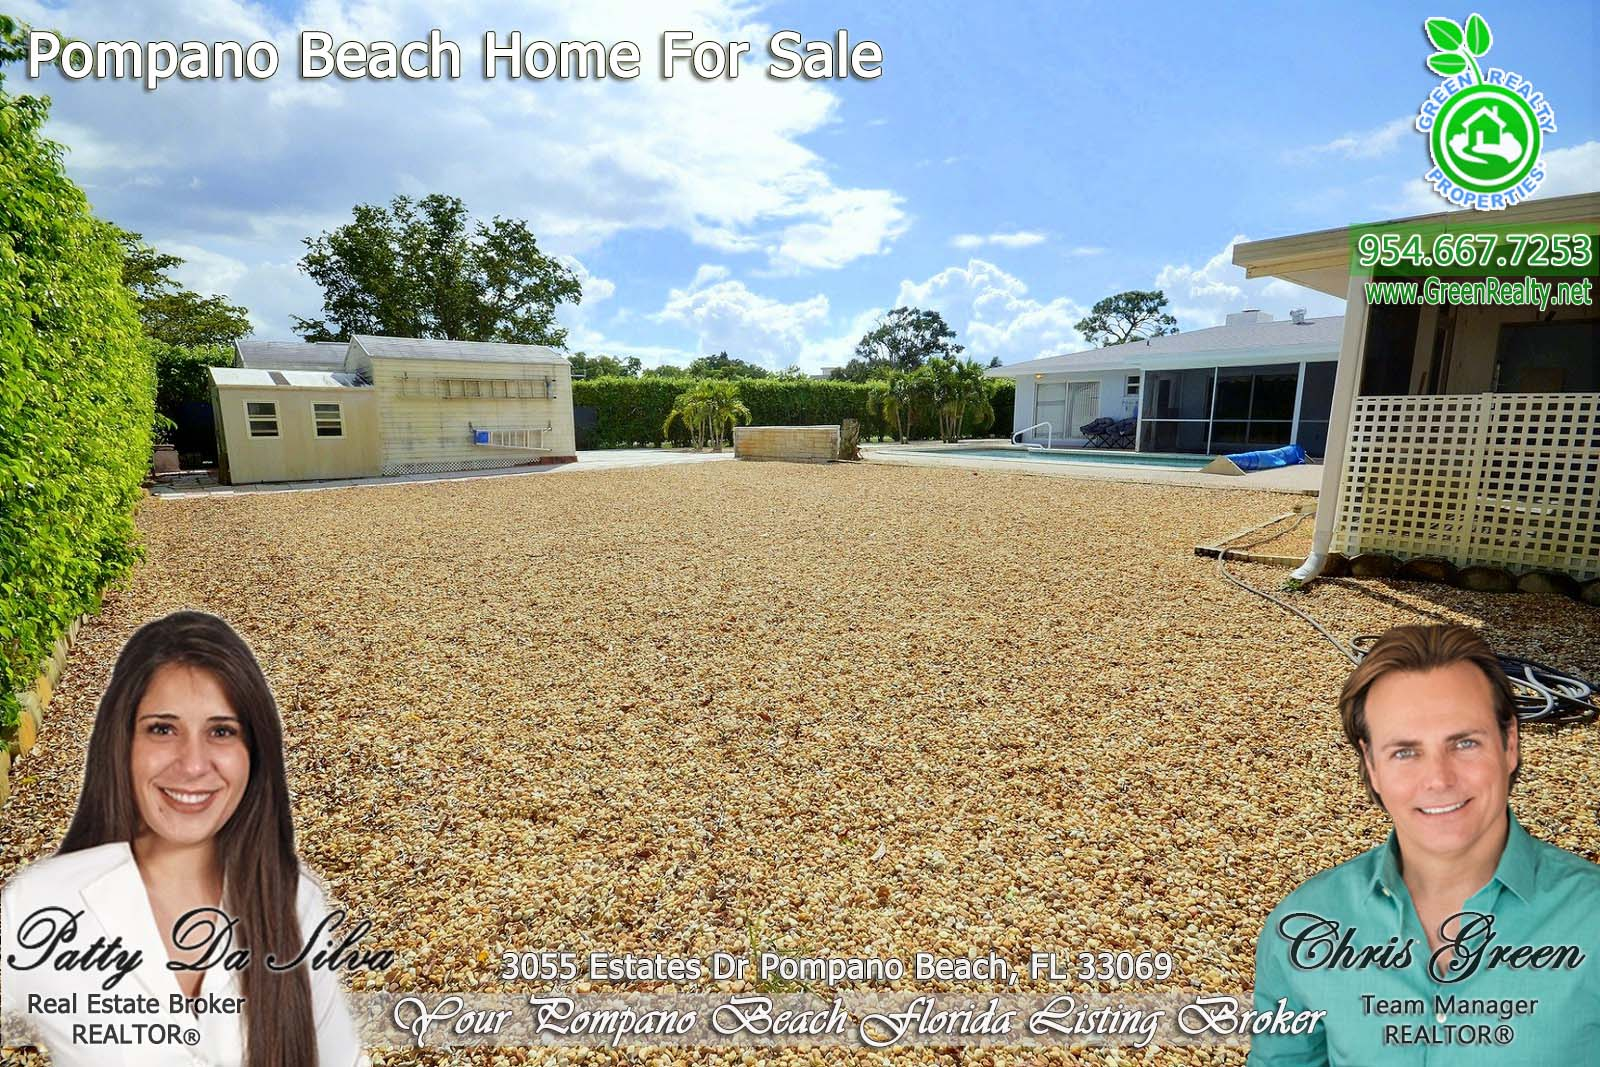 39 Pompano Beach Real Estate For Sale (1)